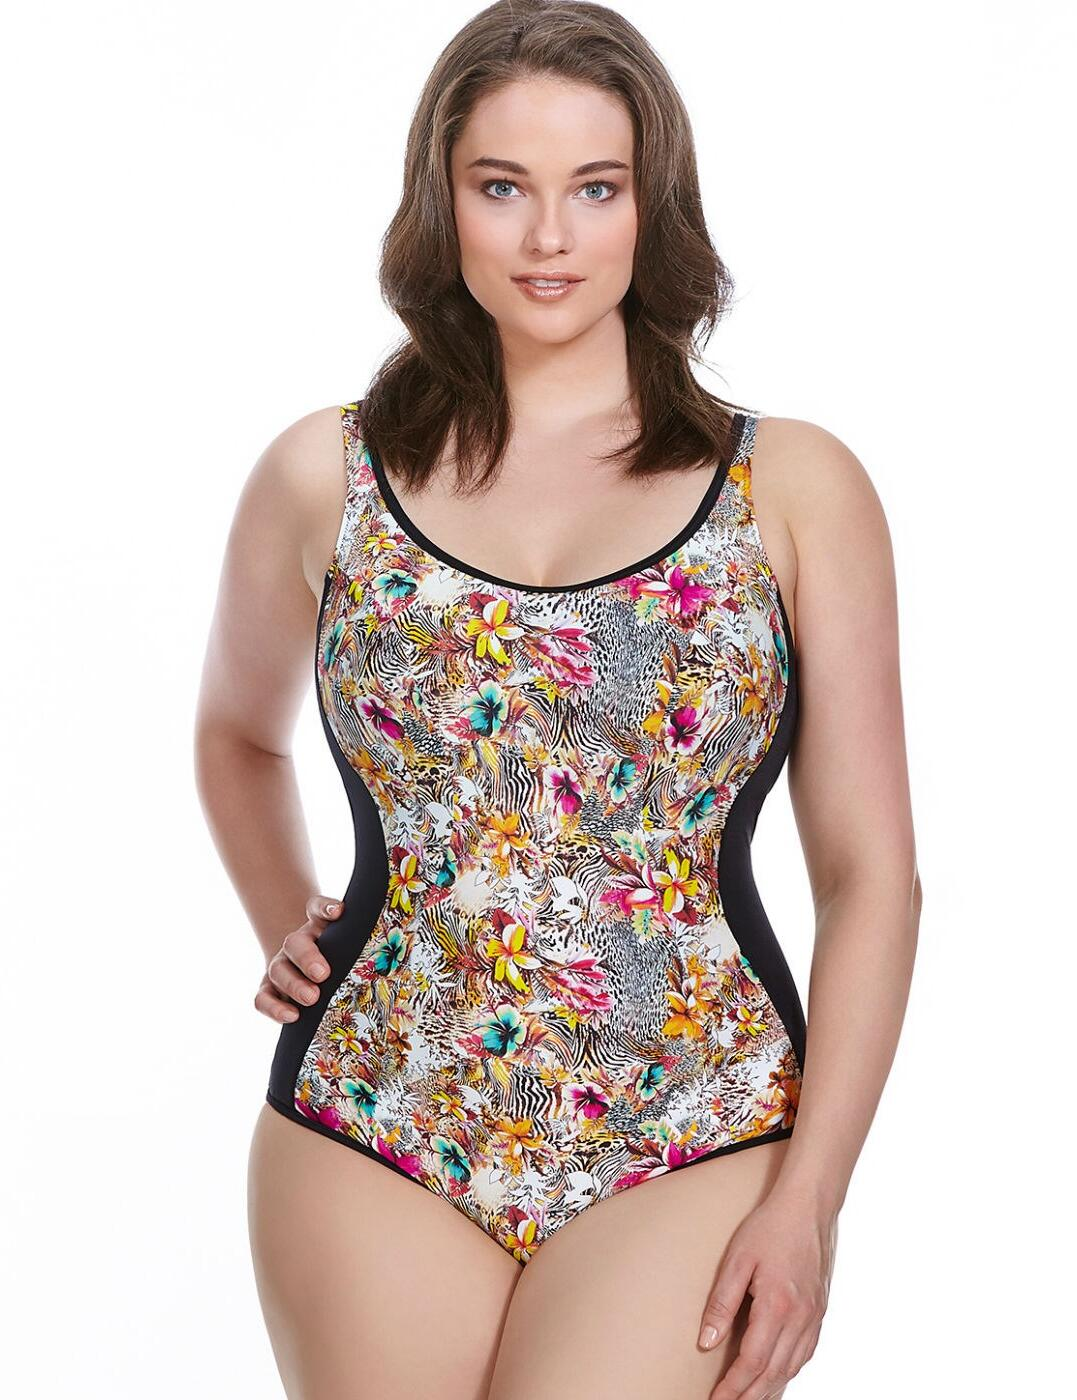 7520 Elomi Fly Free Moulded Swimsuit  - 7520 Swimsuit